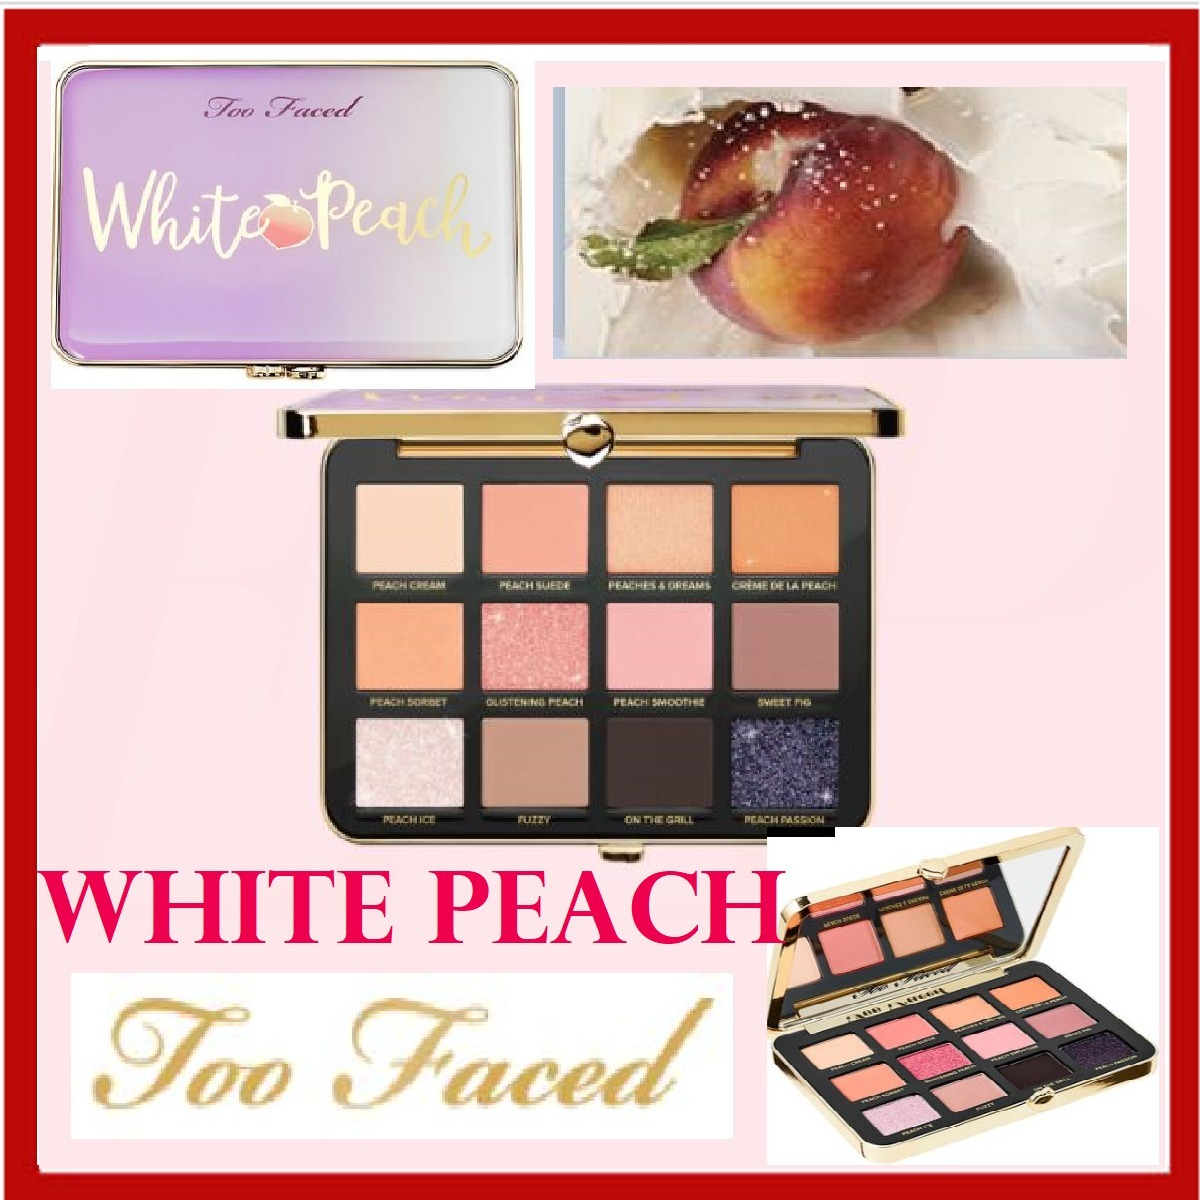 新作12色 (Too Faced) White Peach Eye Shadow パレット